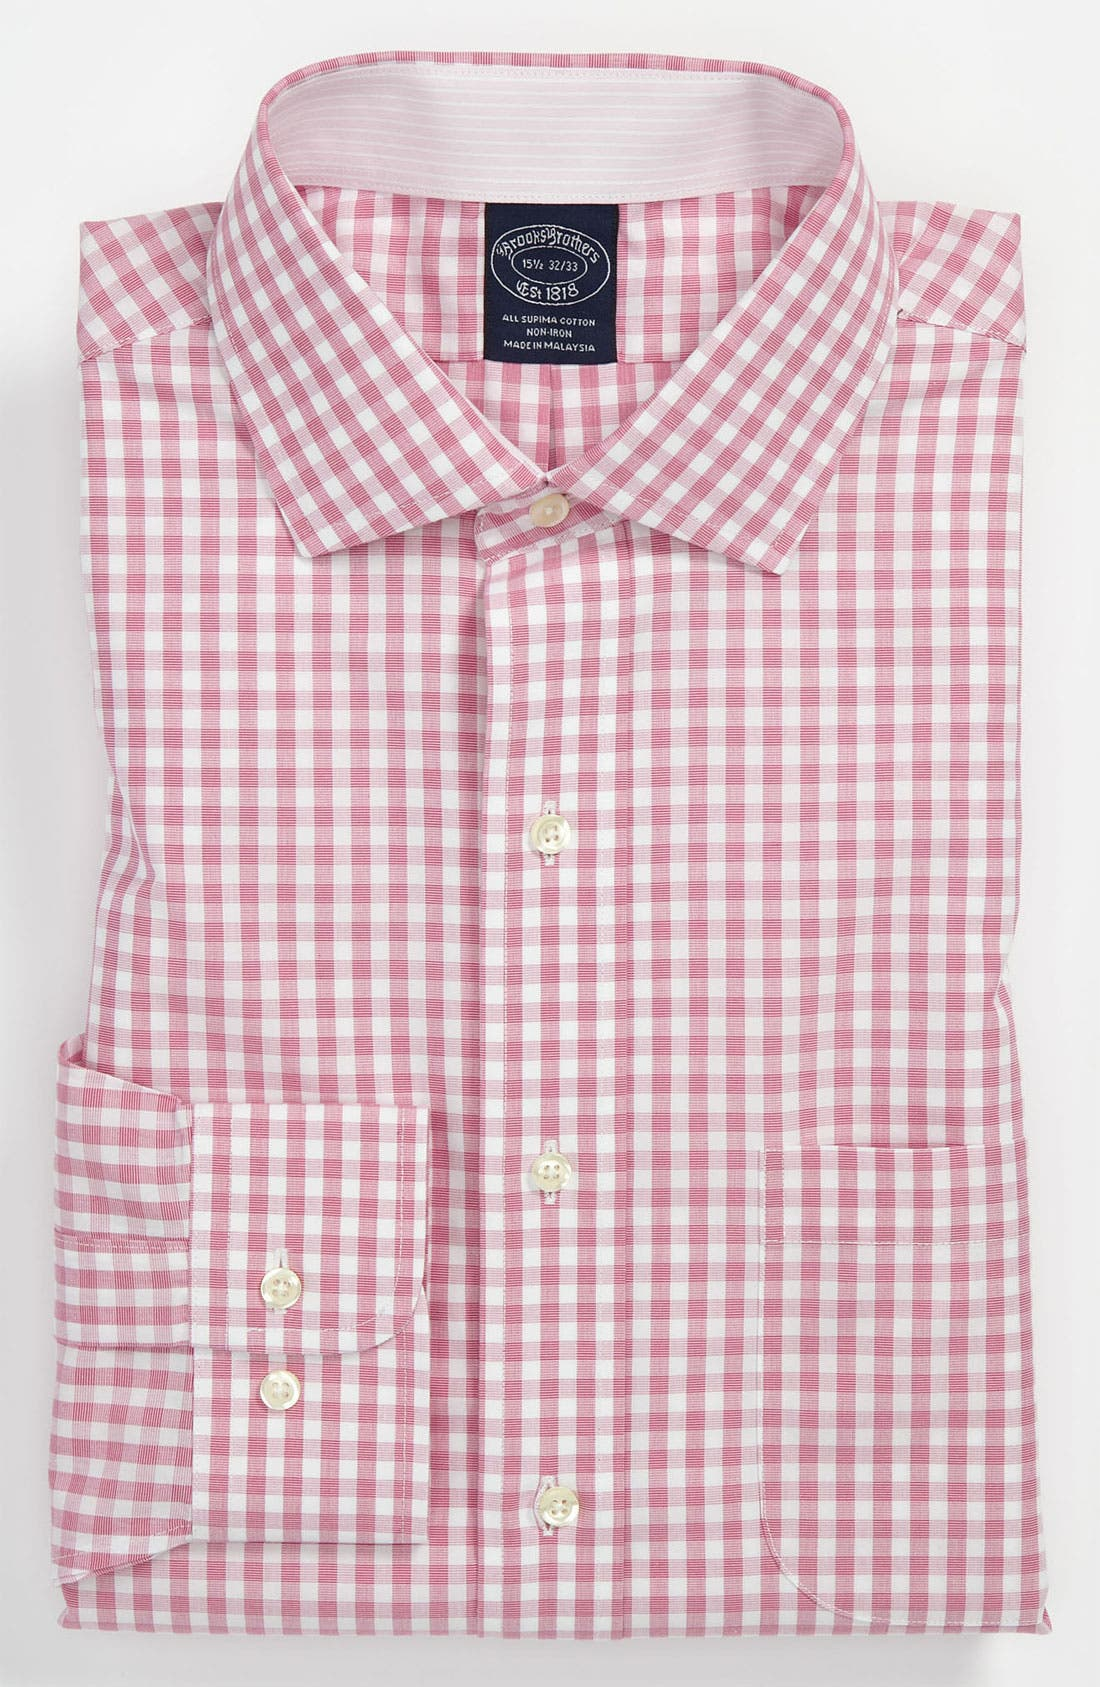 Alternate Image 1 Selected - Brooks Brothers Slim Fit Non-Iron Dress Shirt (3 for $225)